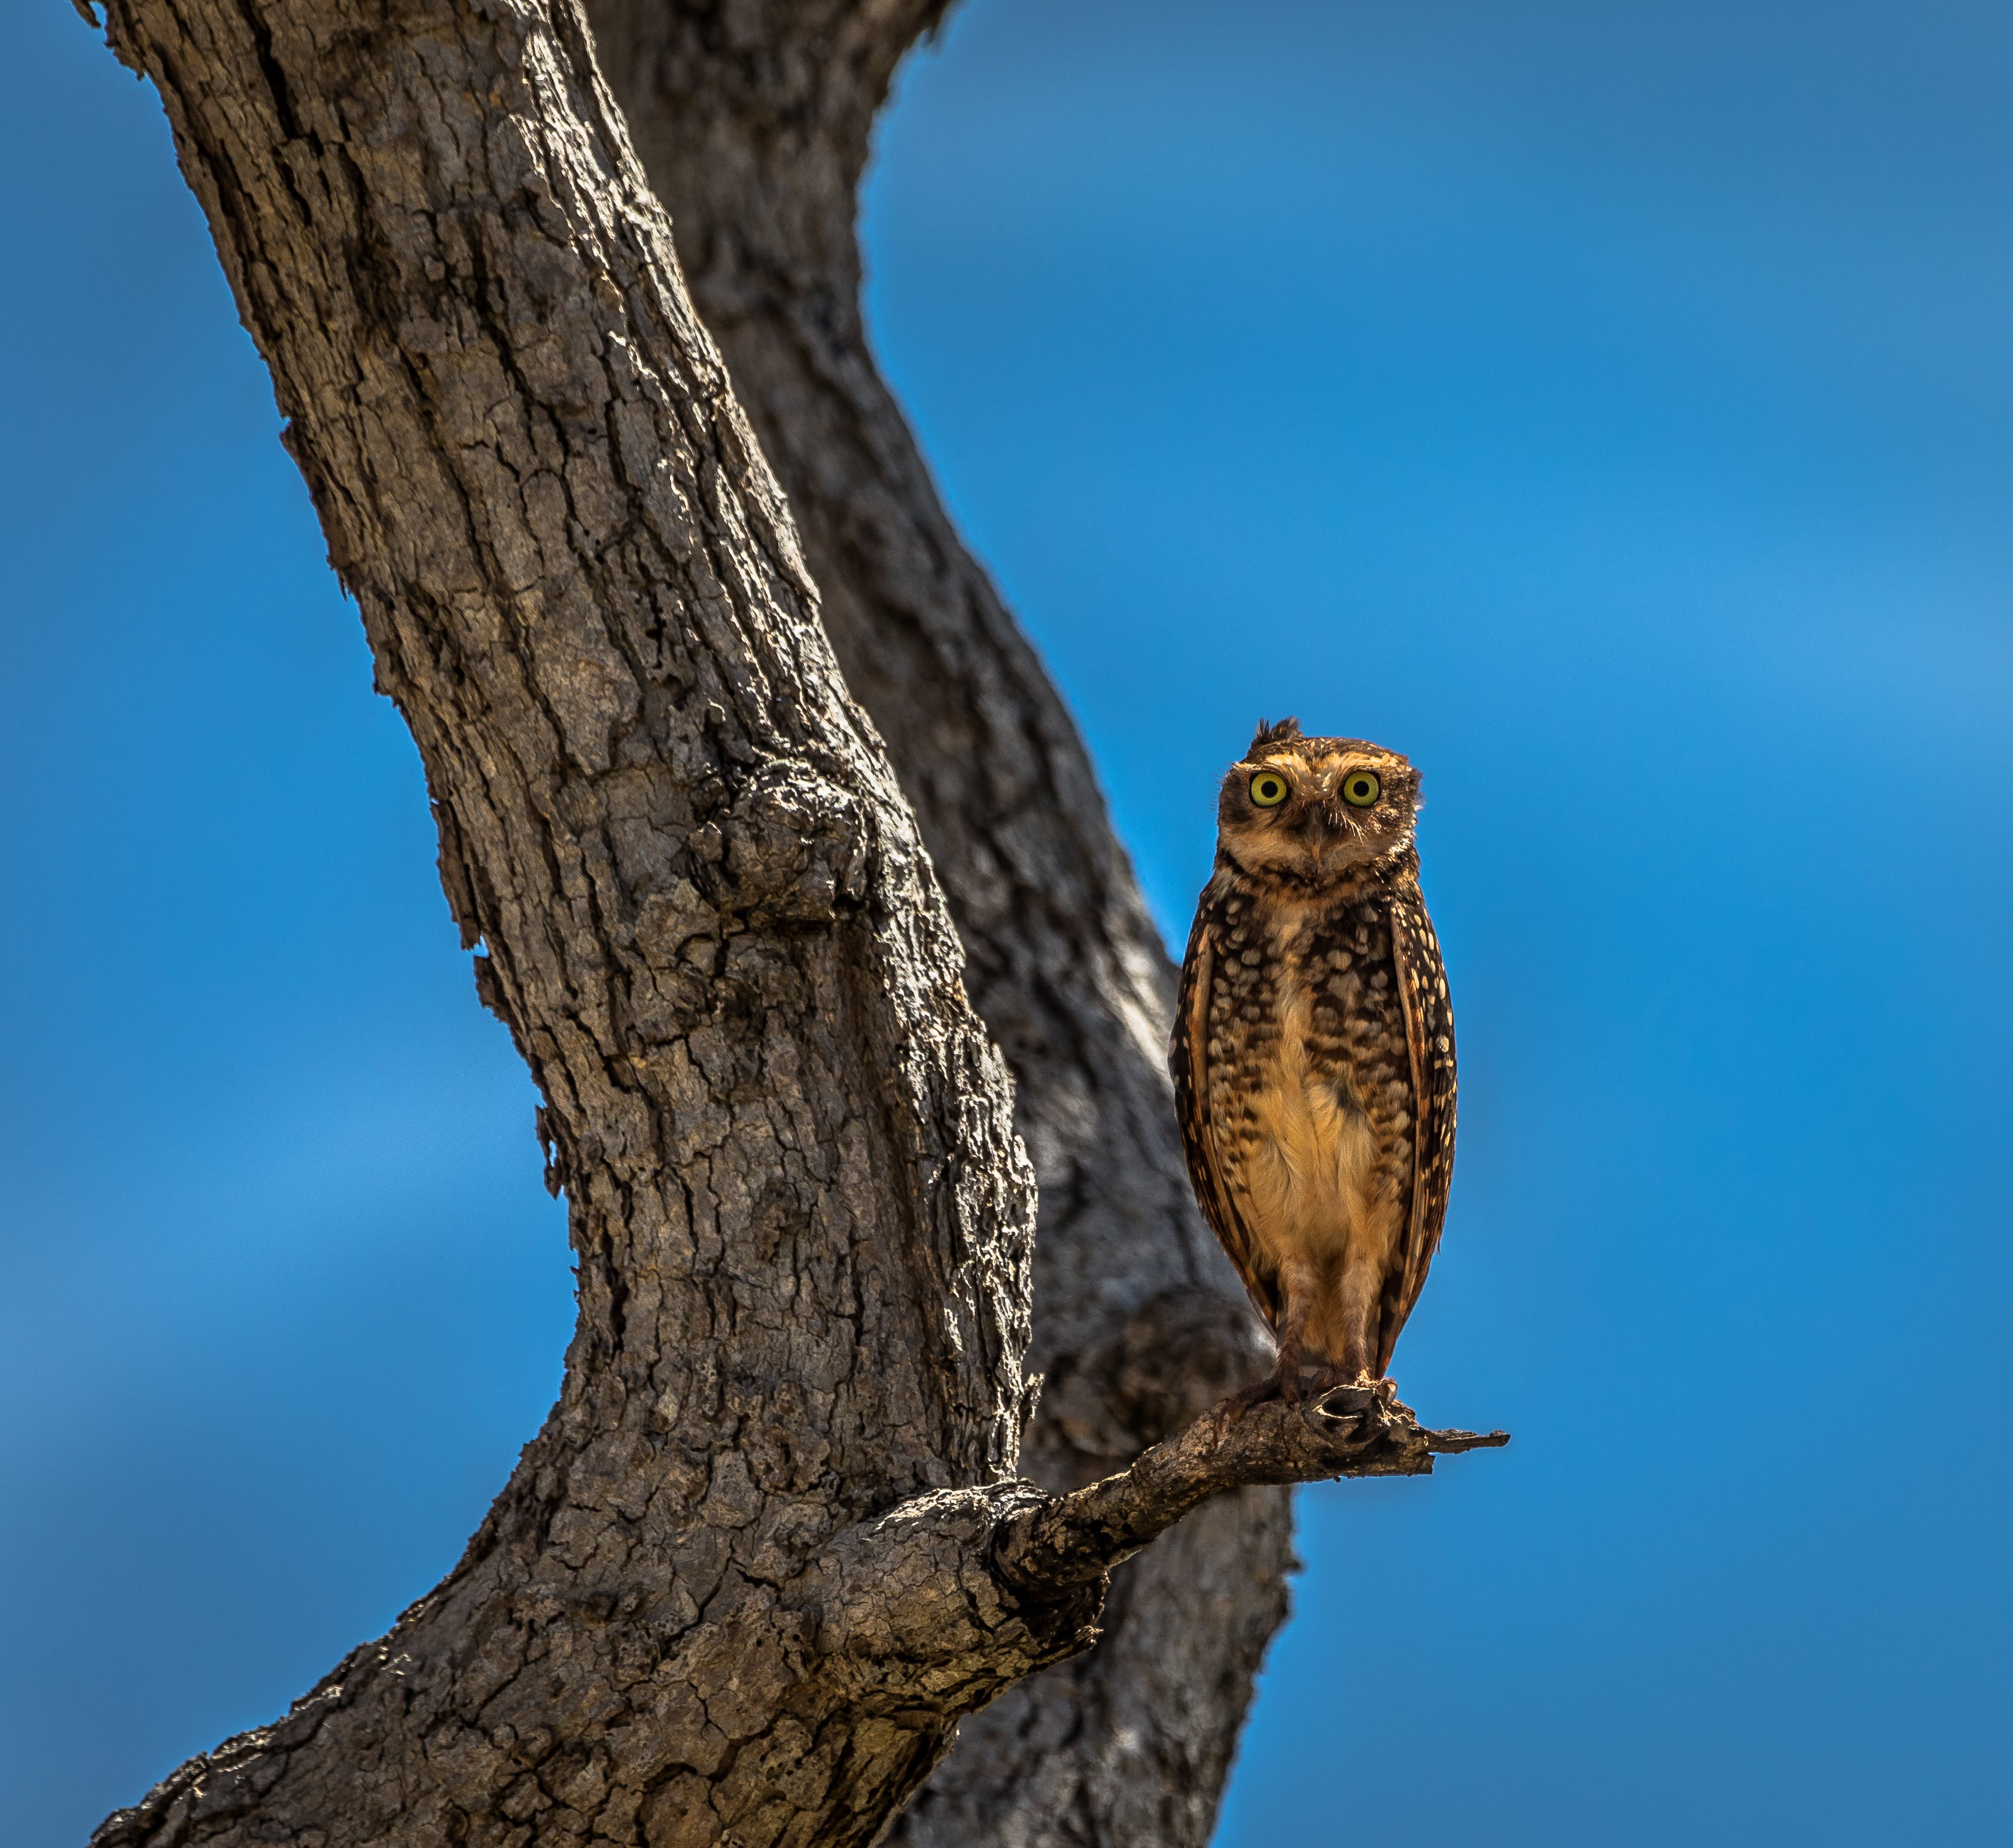 Owl Stand on Branch of Tree